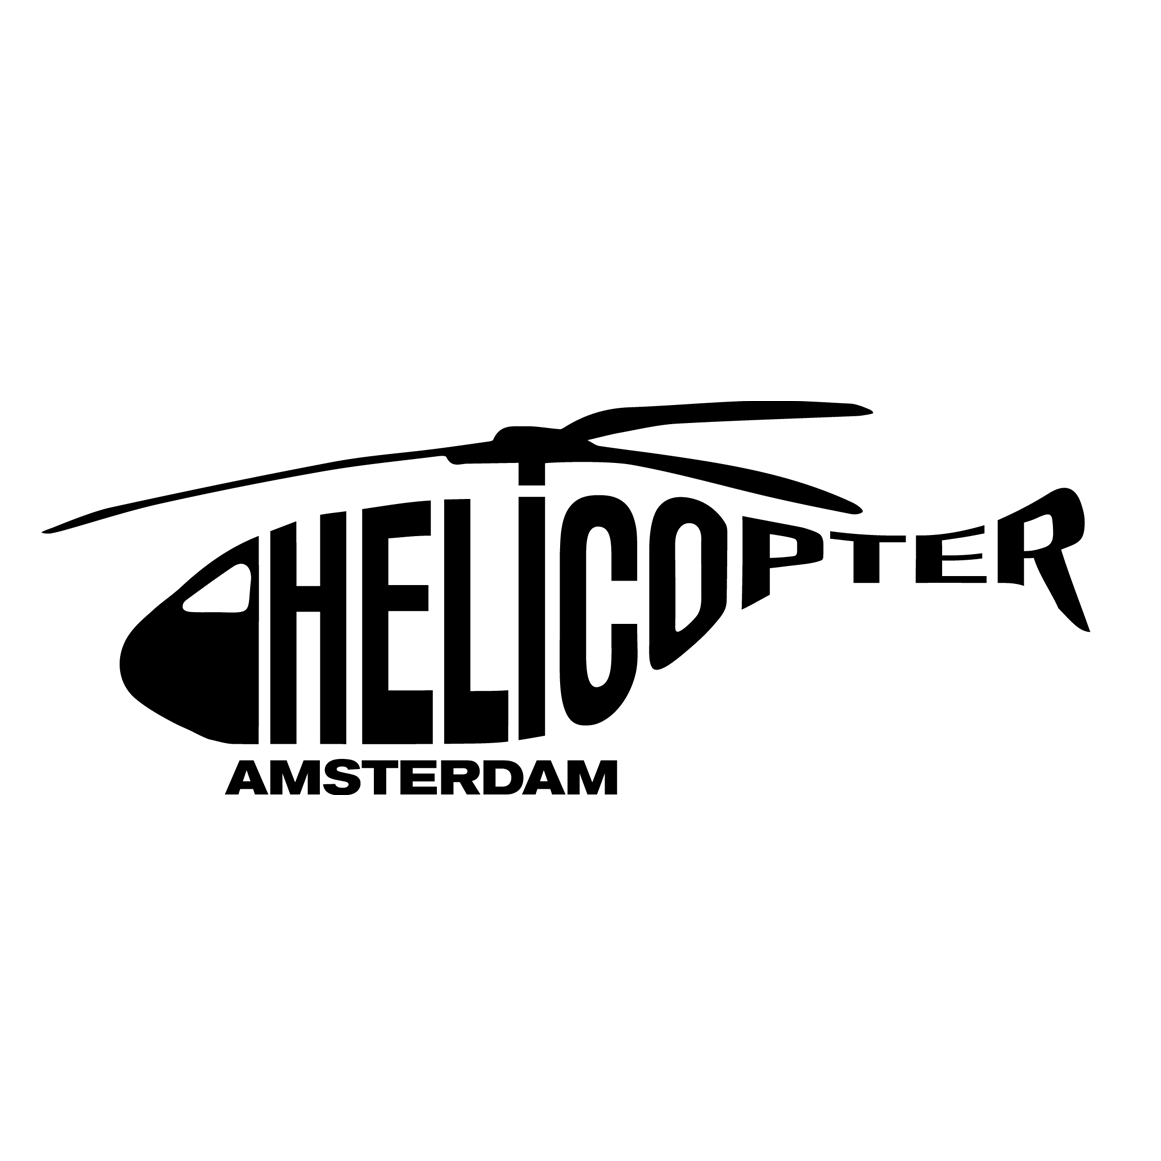 Helicopter Amsterdam